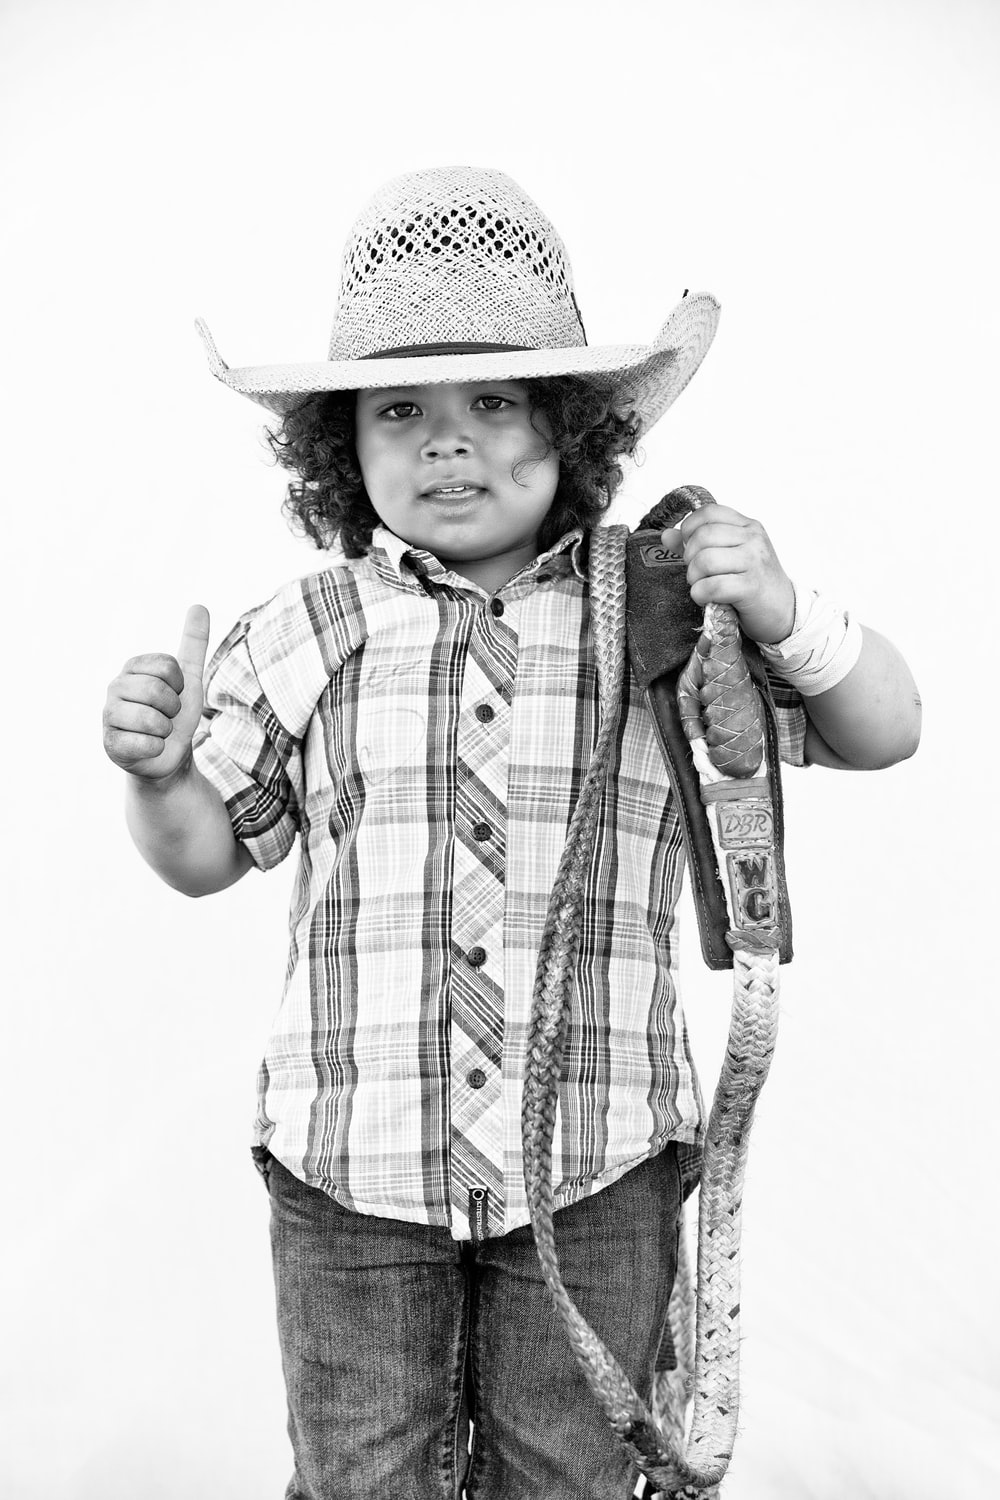 grayscale photo of boy wearing cowboy hat